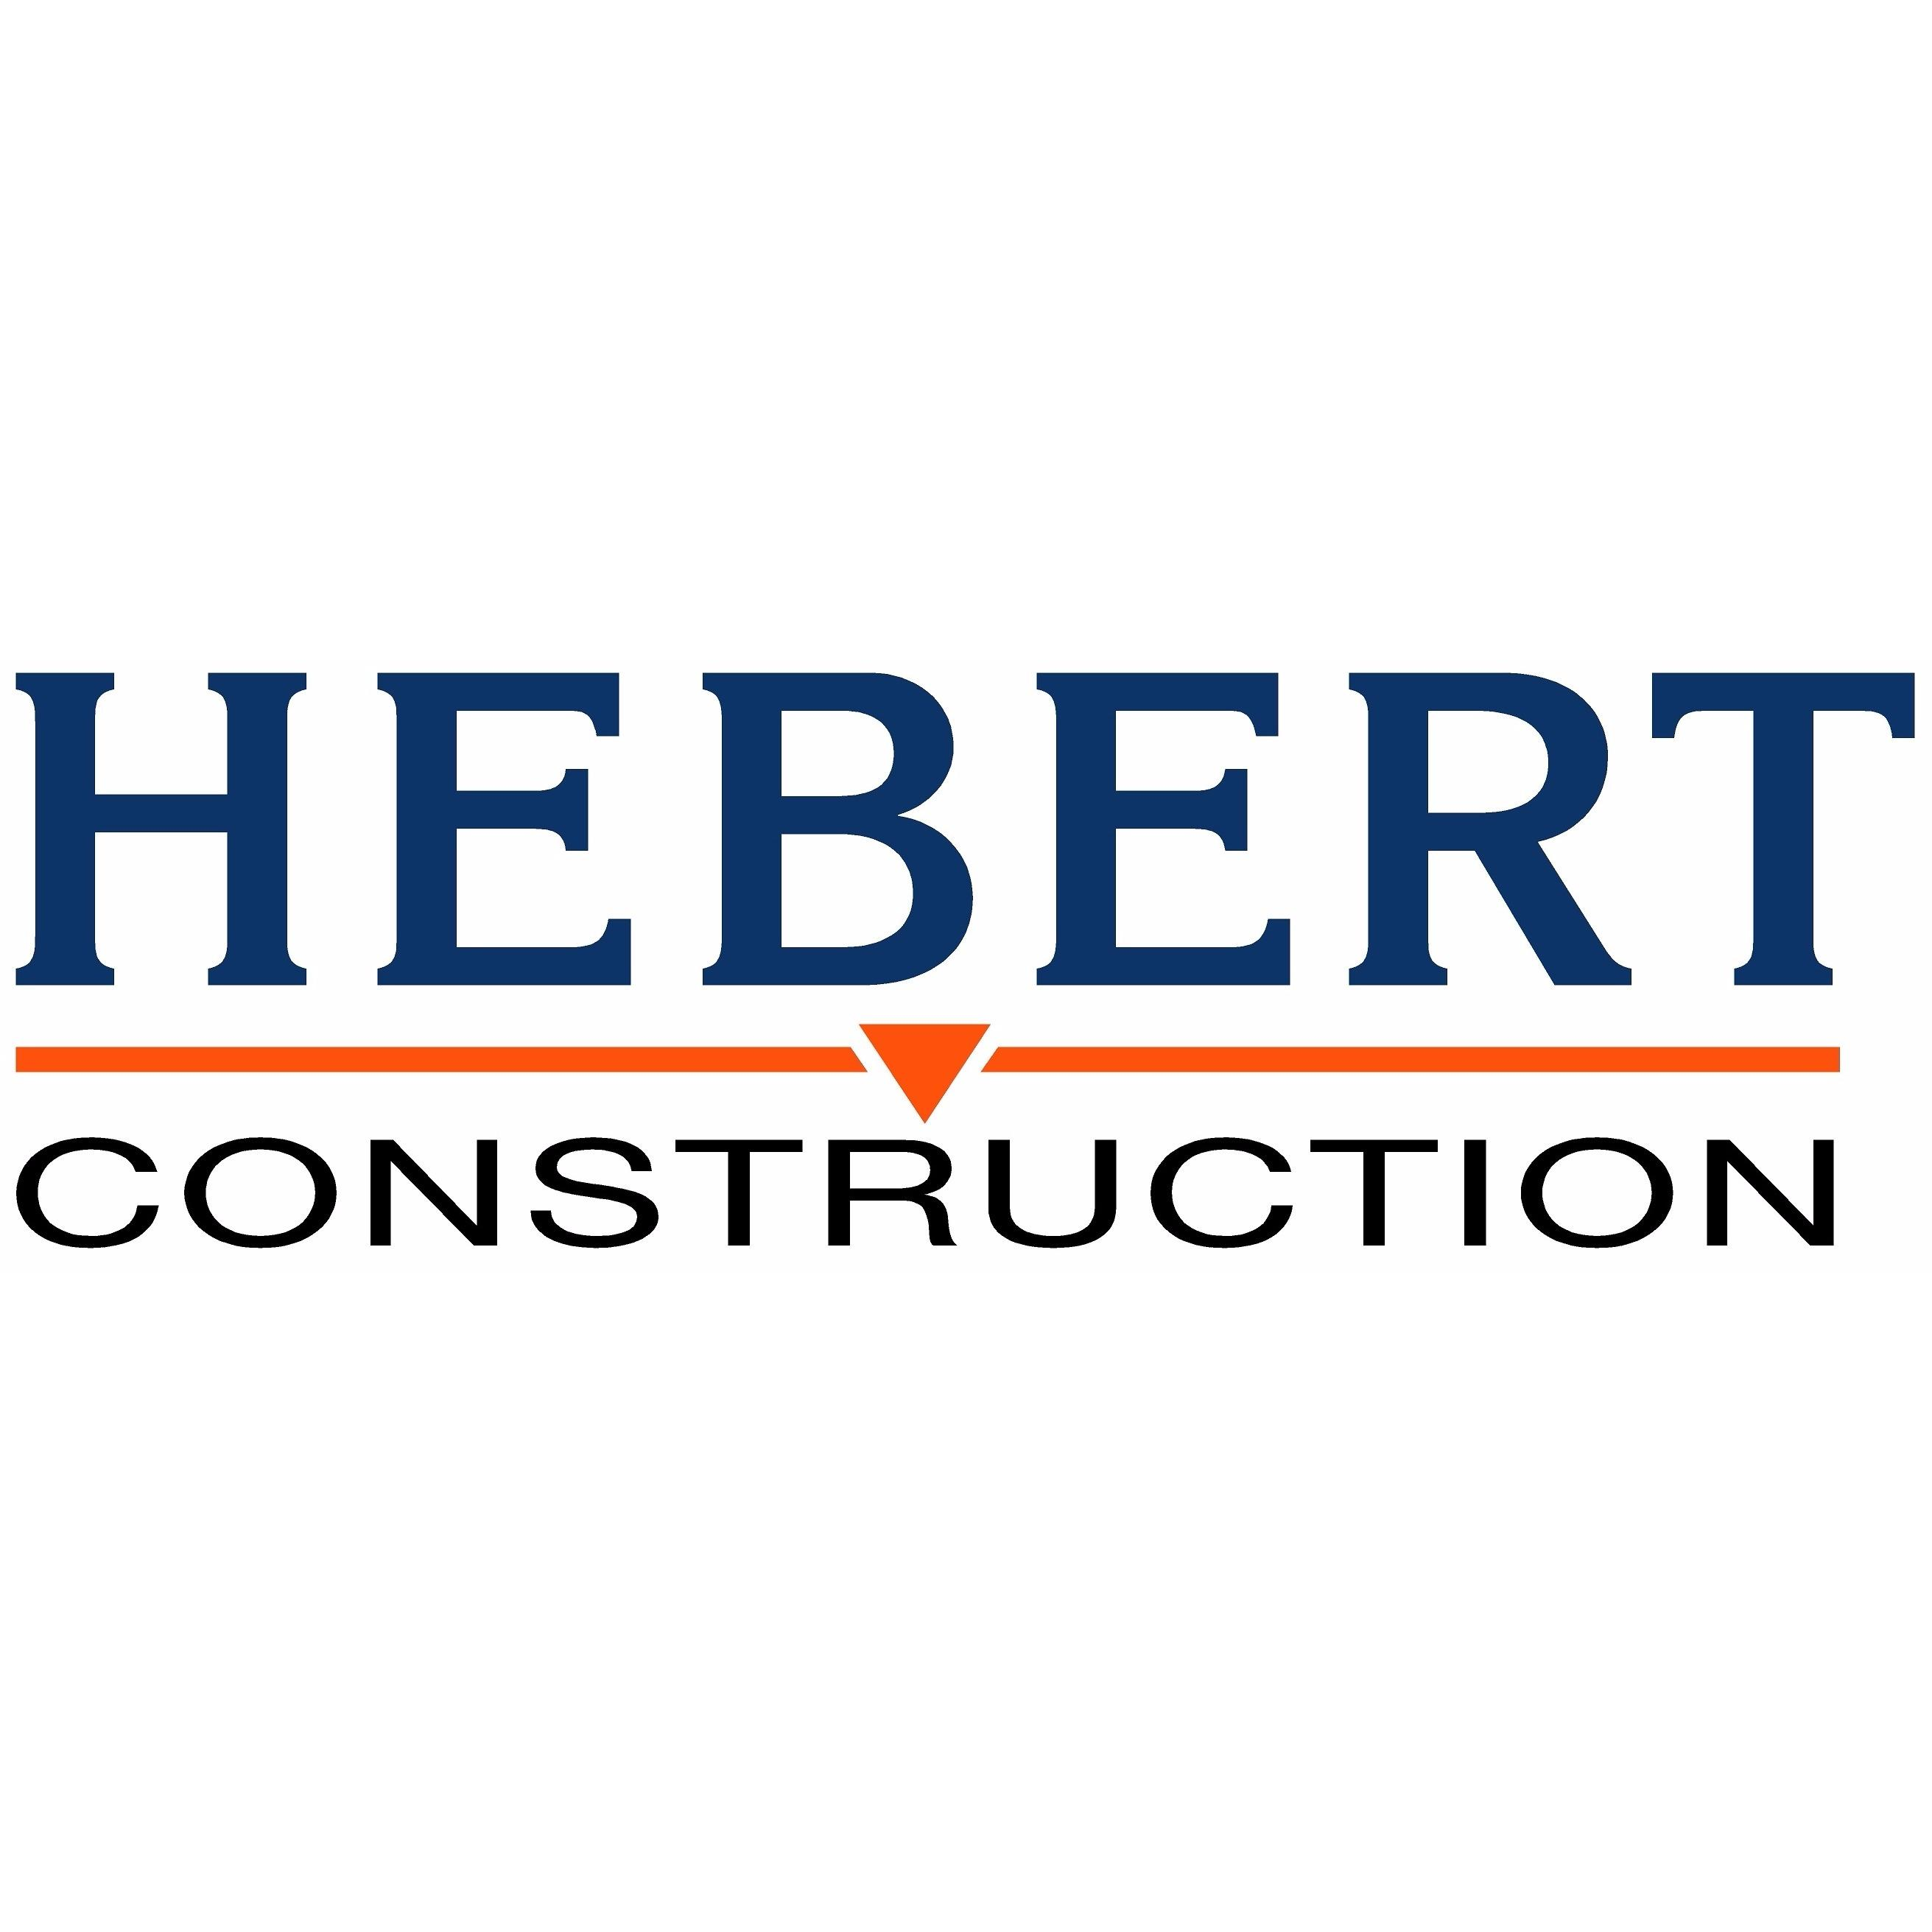 Hebert construction llc in lewiston me 04240 for Cost of building a house in southern maine